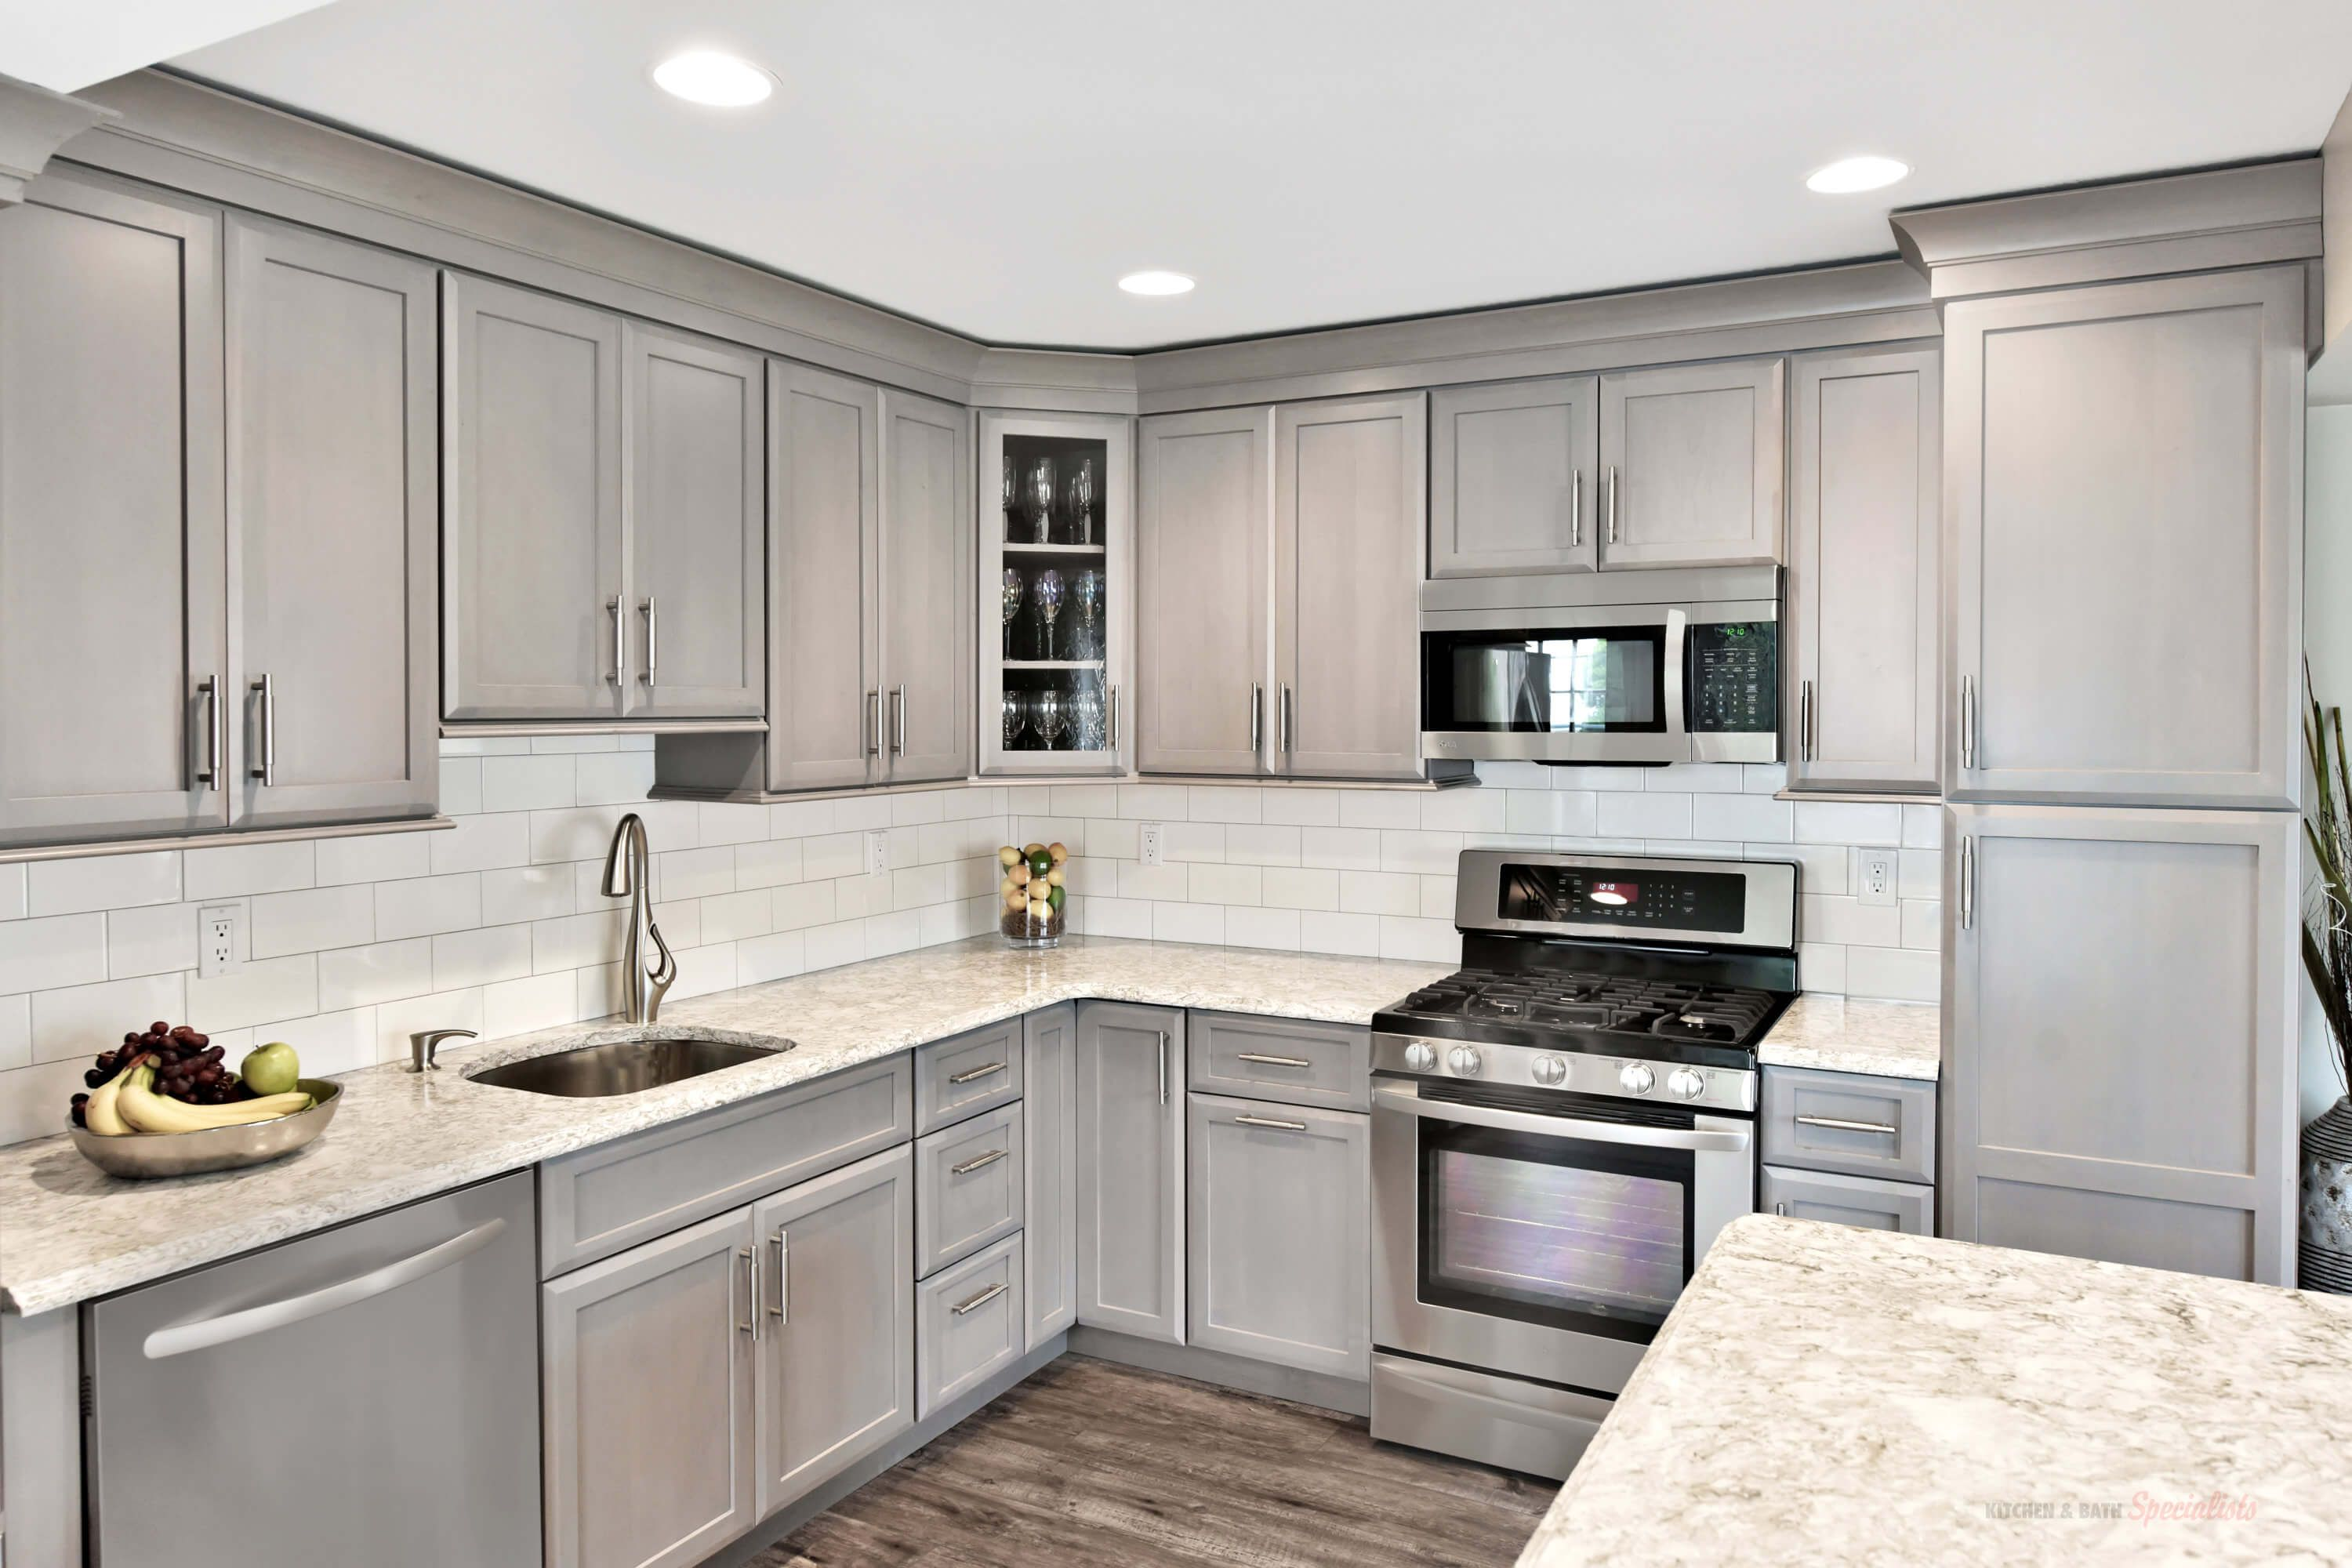 Pin By Consumers Kitchens Baths On Huntington Driftwood In 2019